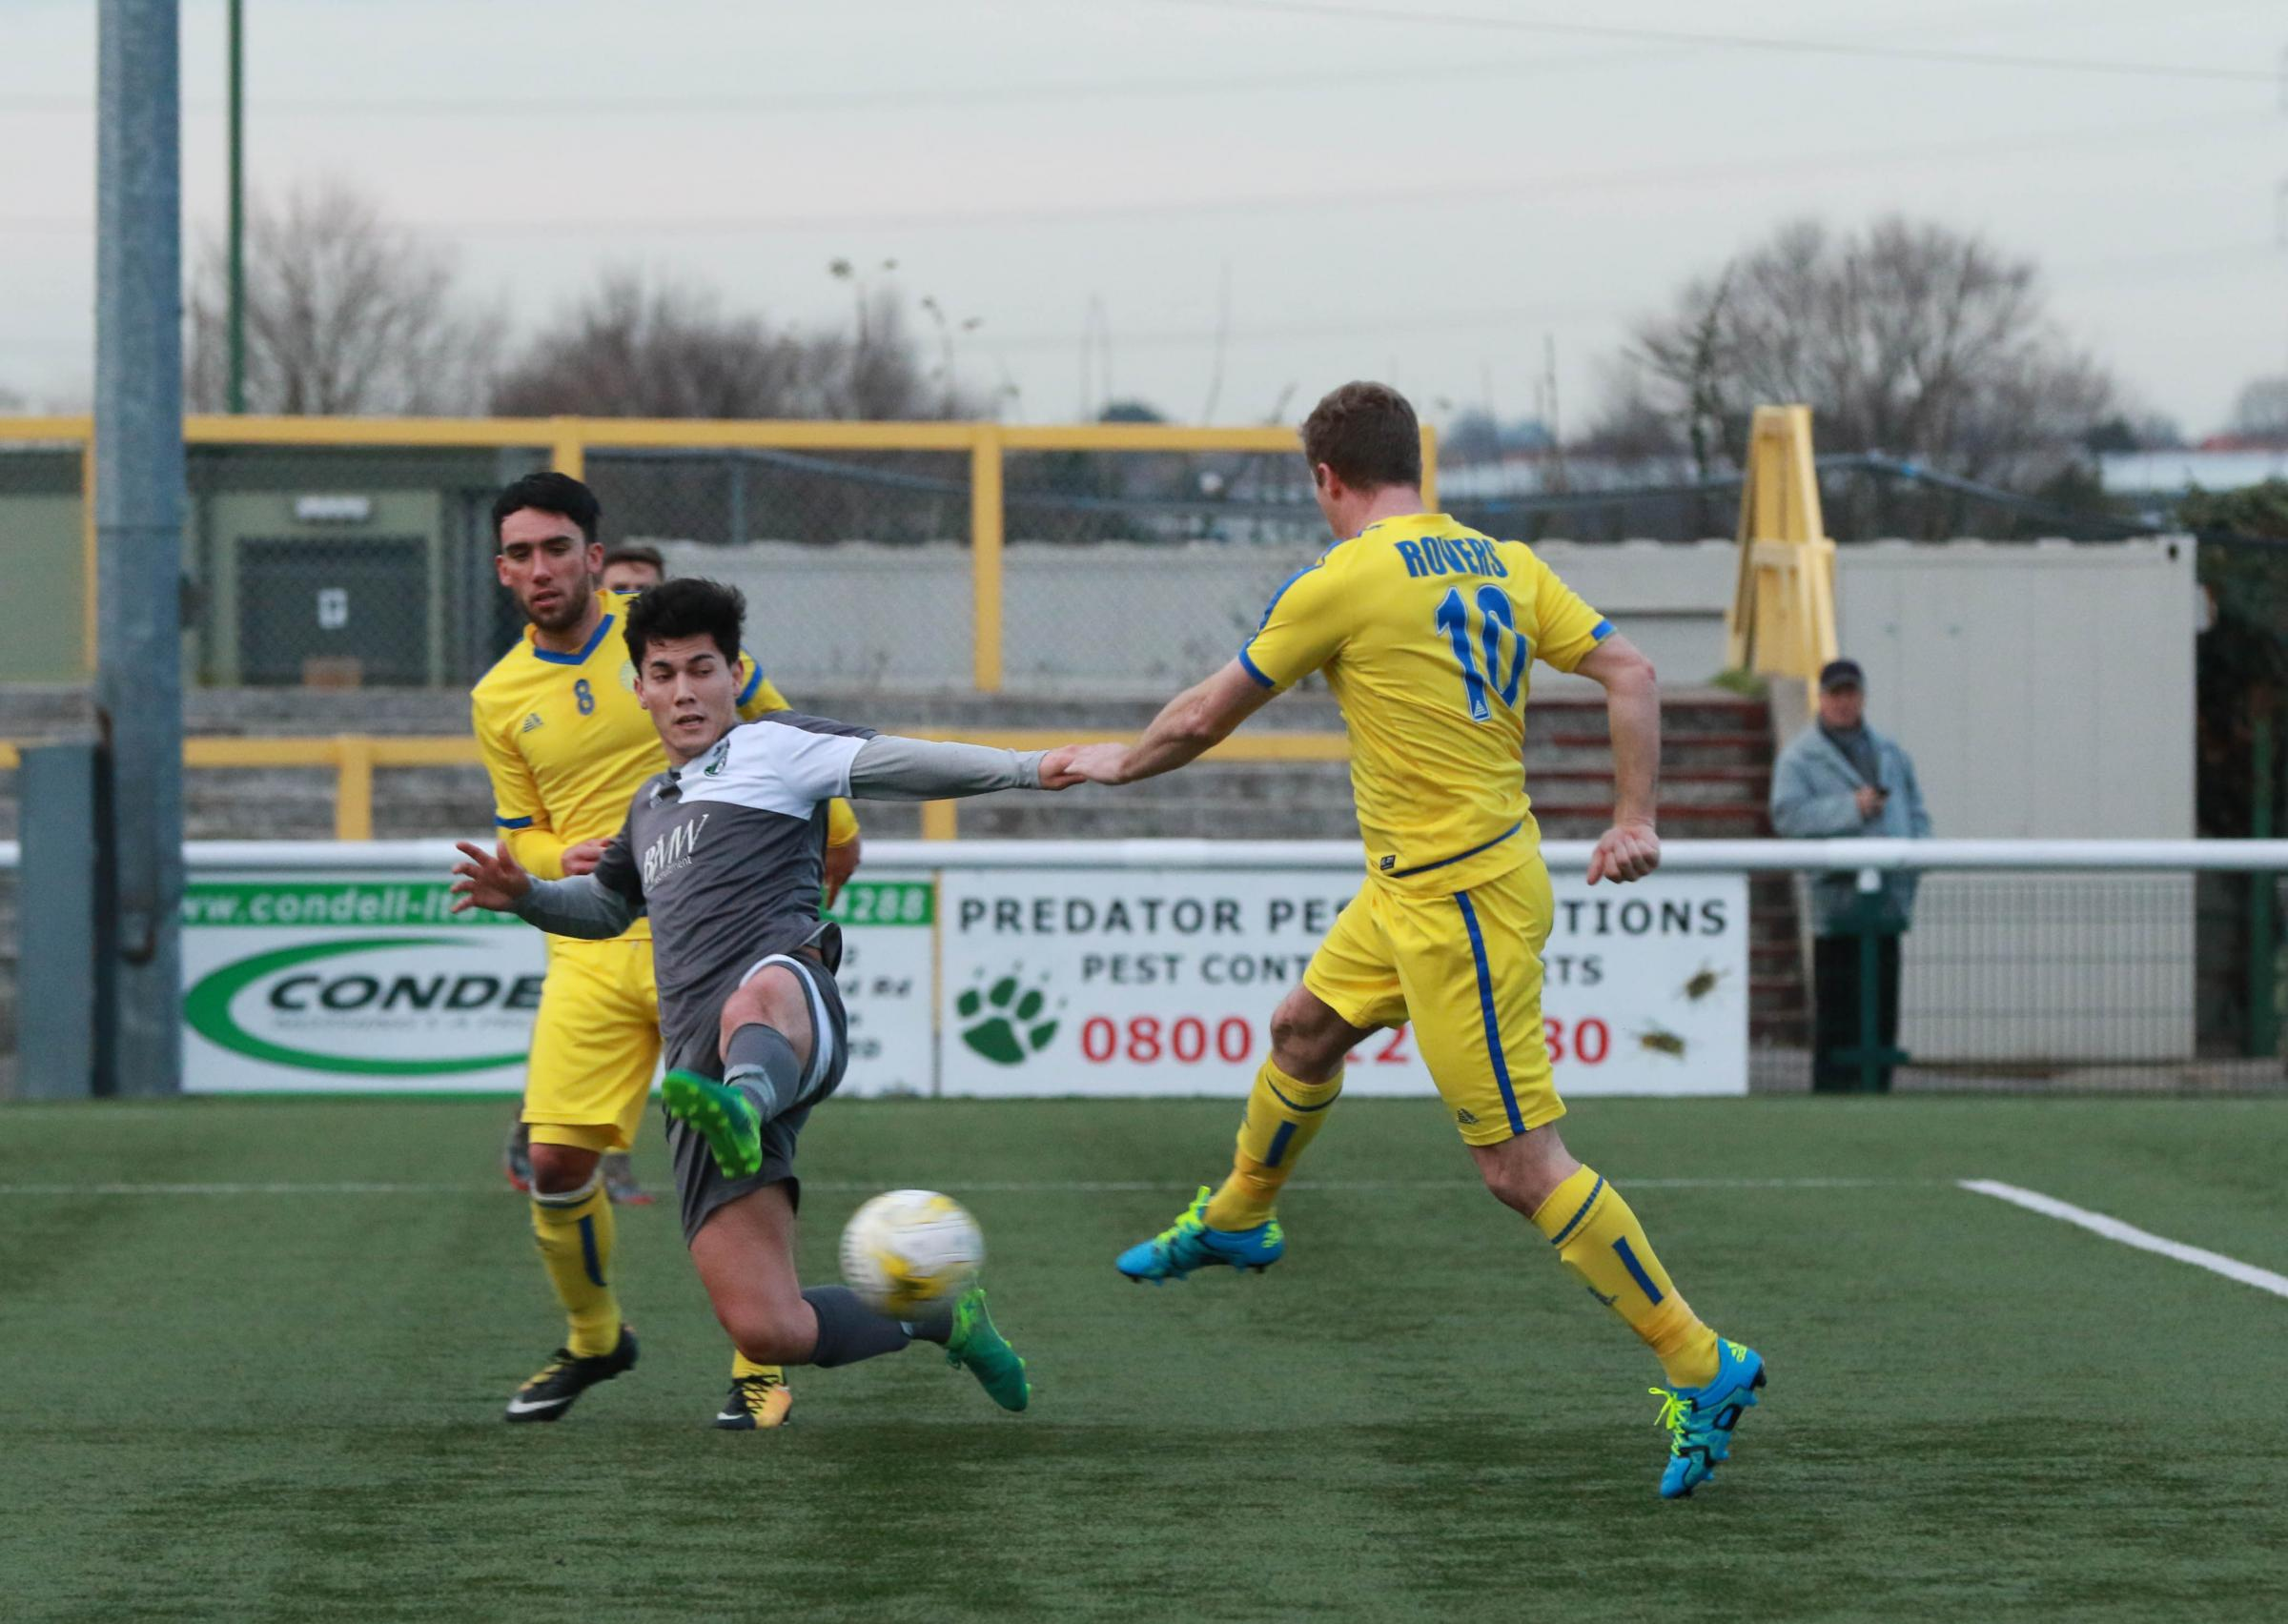 Sutton Common Rovers beat CB Hounslow United 2-1 on Saturday